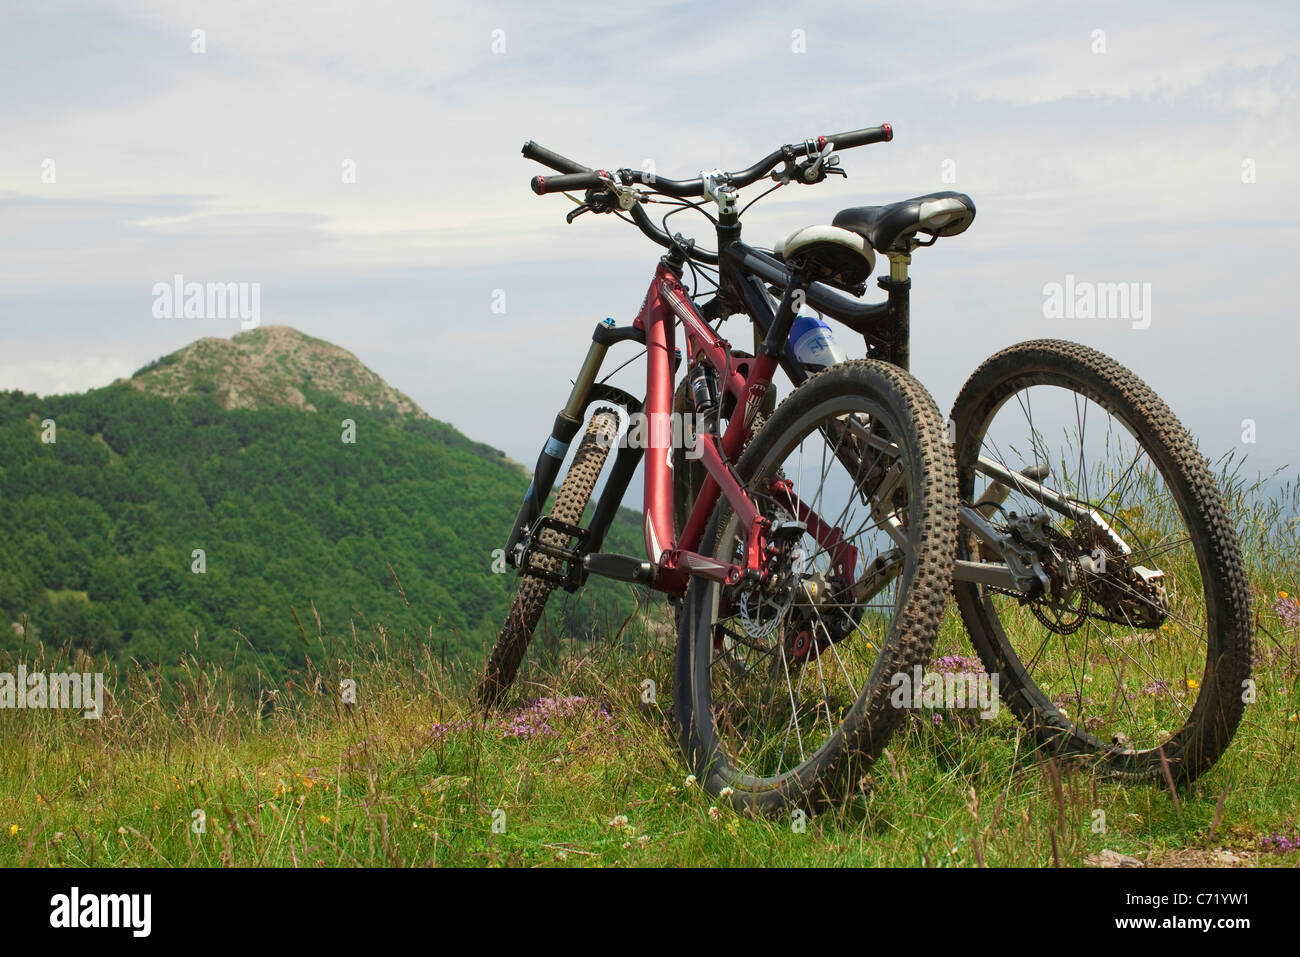 Two bicycles leaning against each other on hilltop - Stock Image